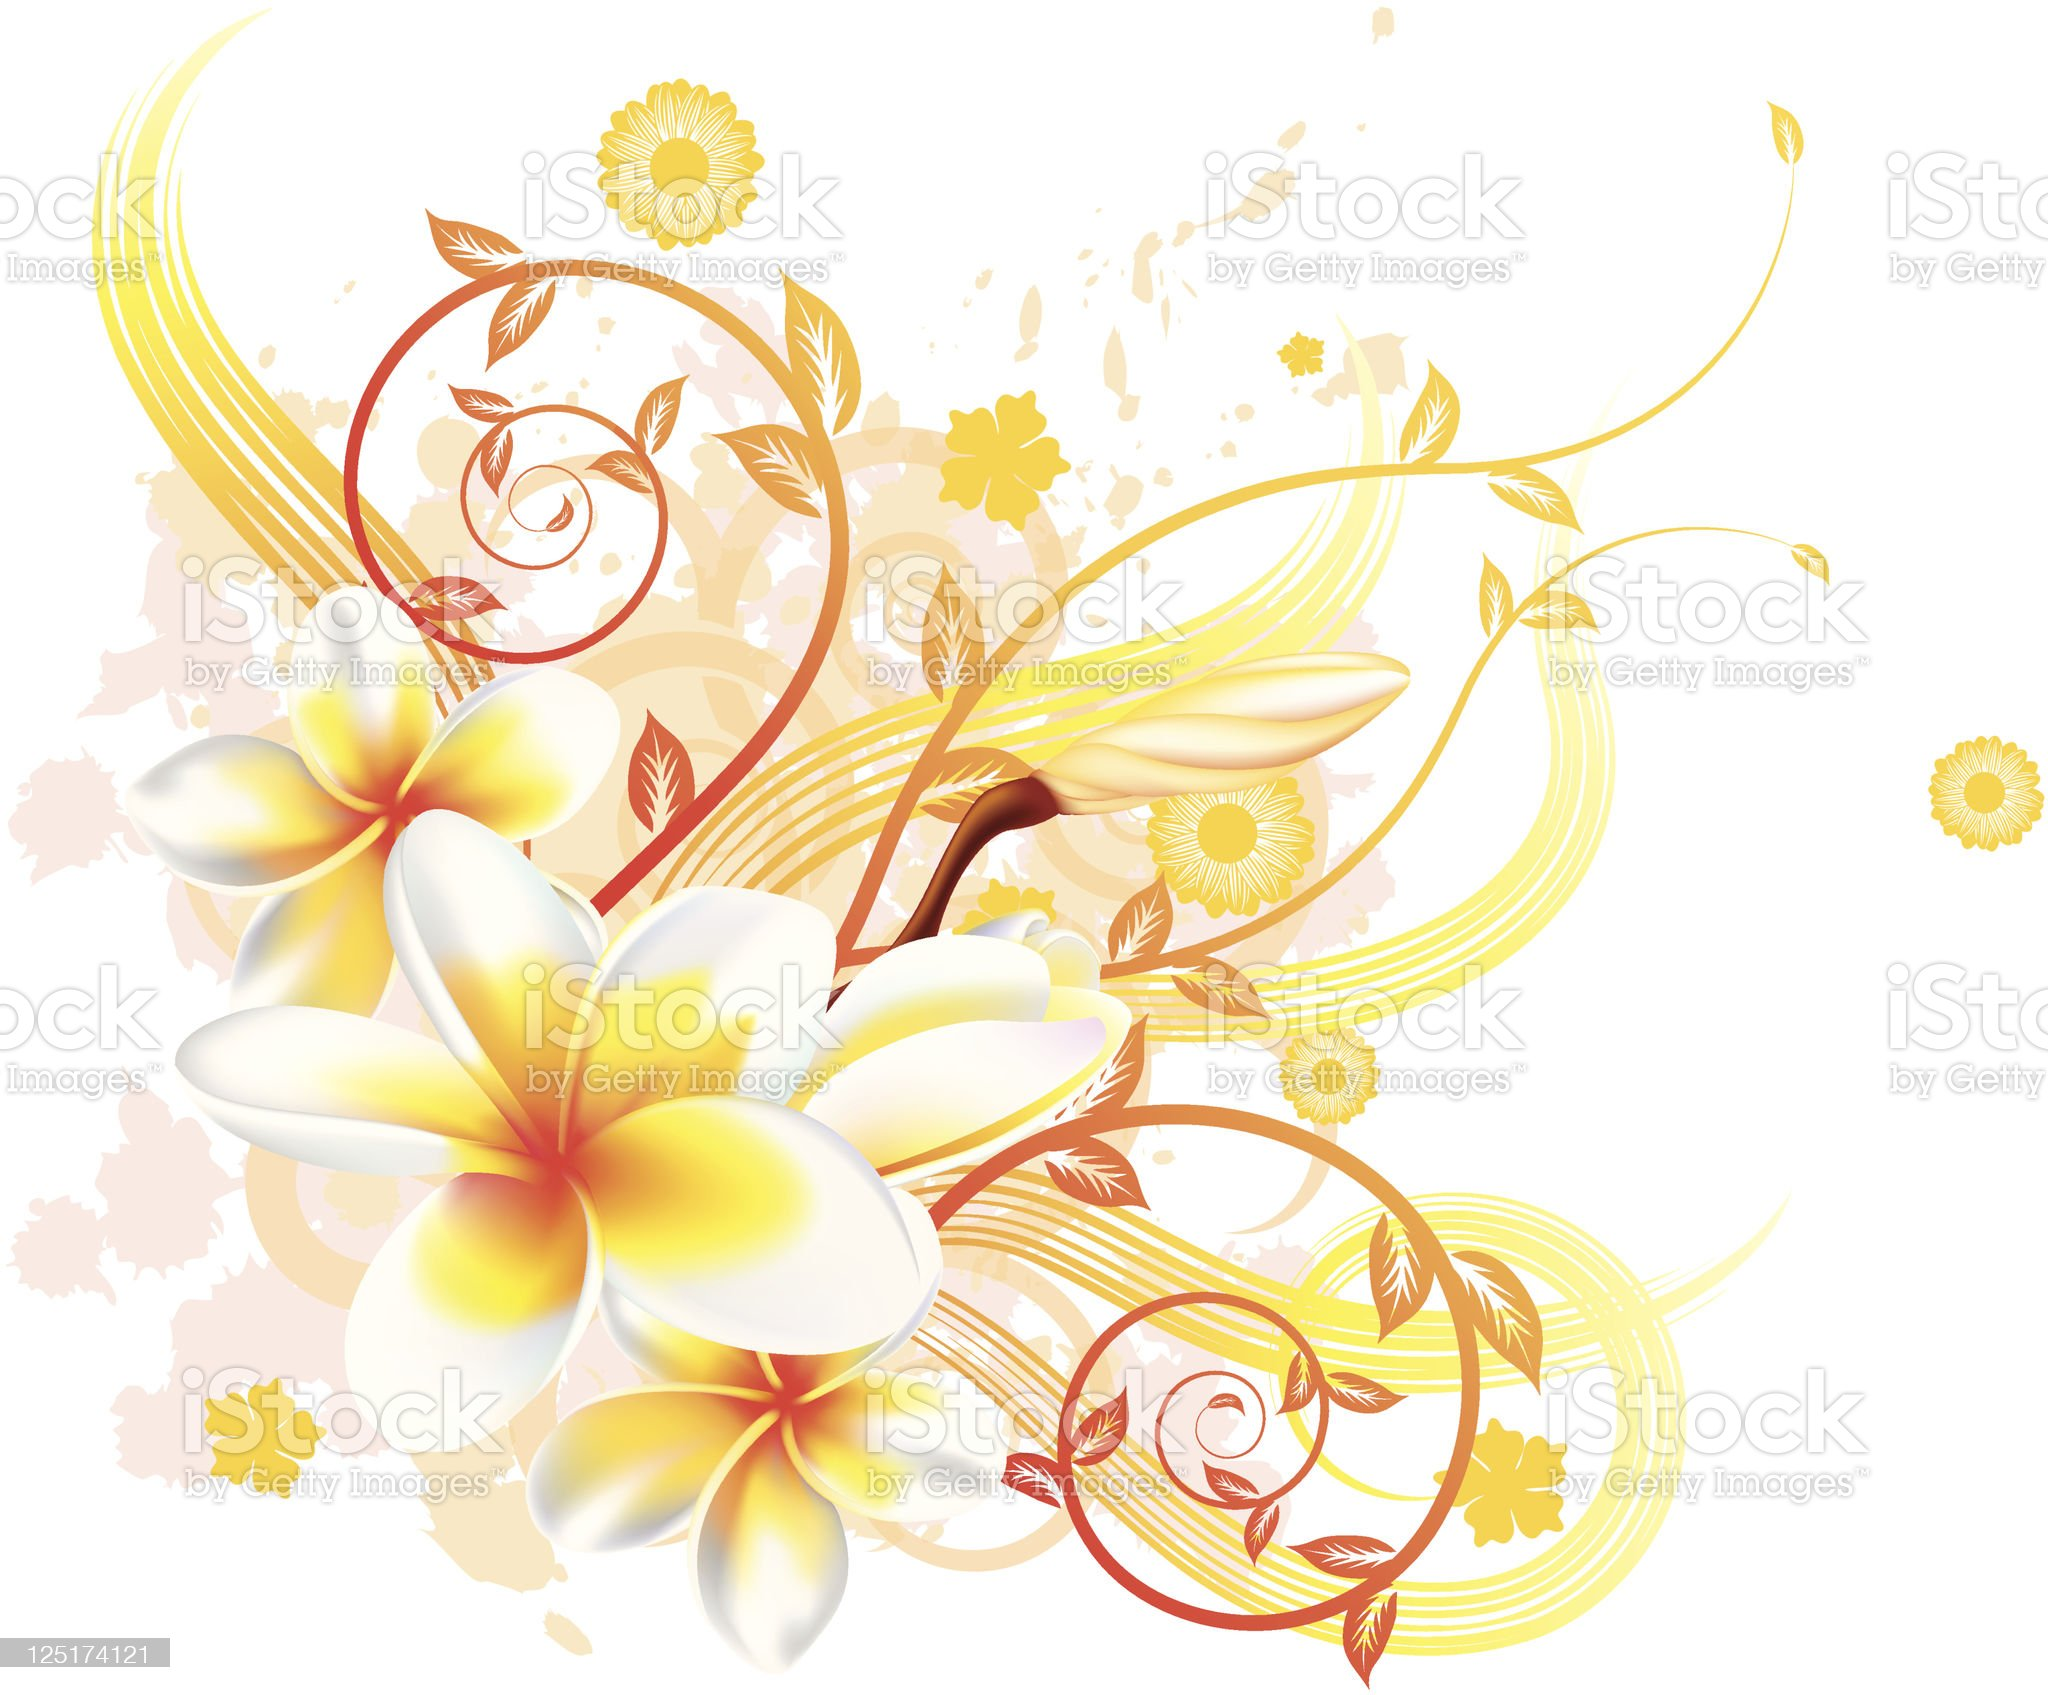 Cool floral background royalty-free stock vector art